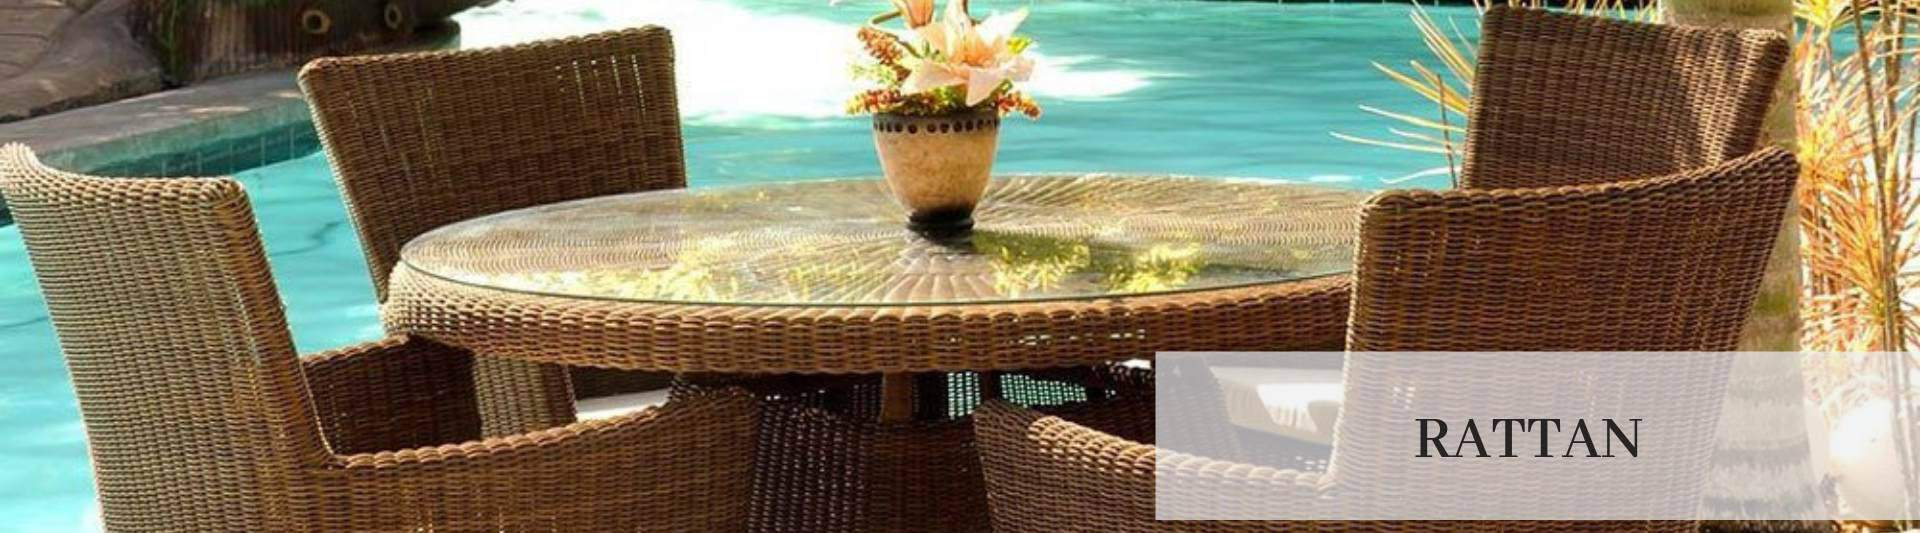 Rattan Corner Sofa Ireland Rattan Garden Furniture Rattan Garden Furniture Ireland